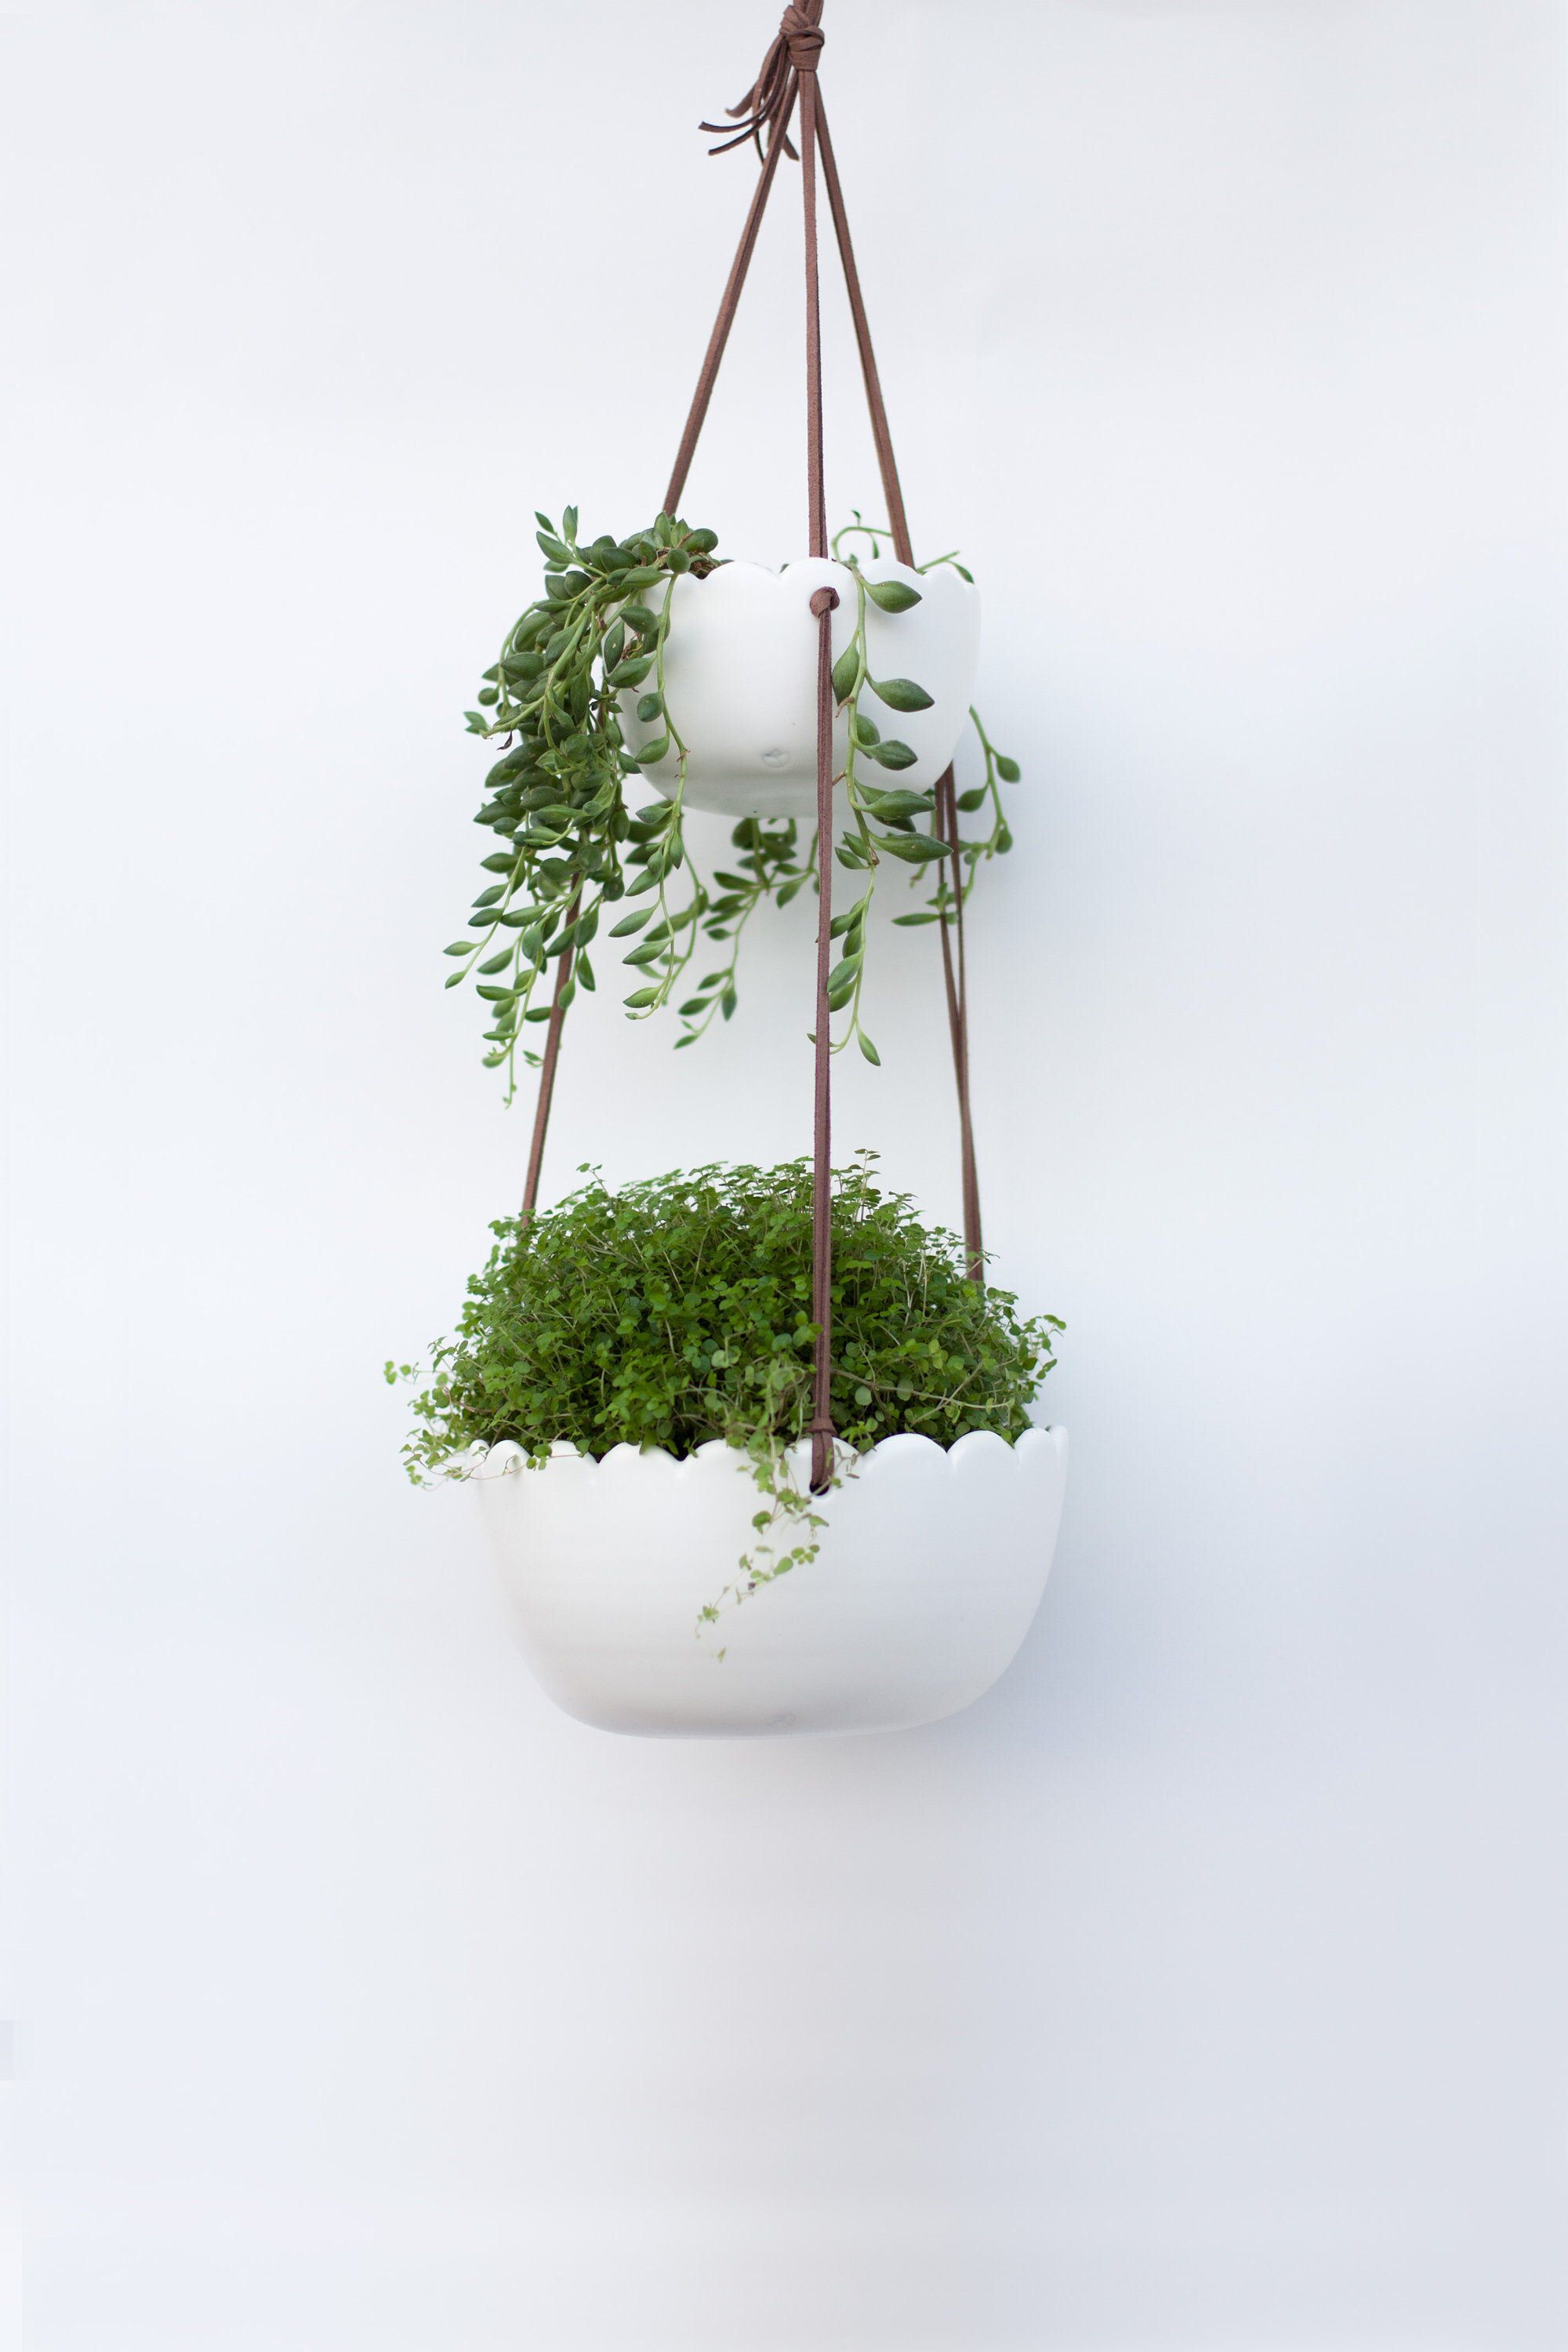 Double ceramic hanging planter indoor wall planter plant